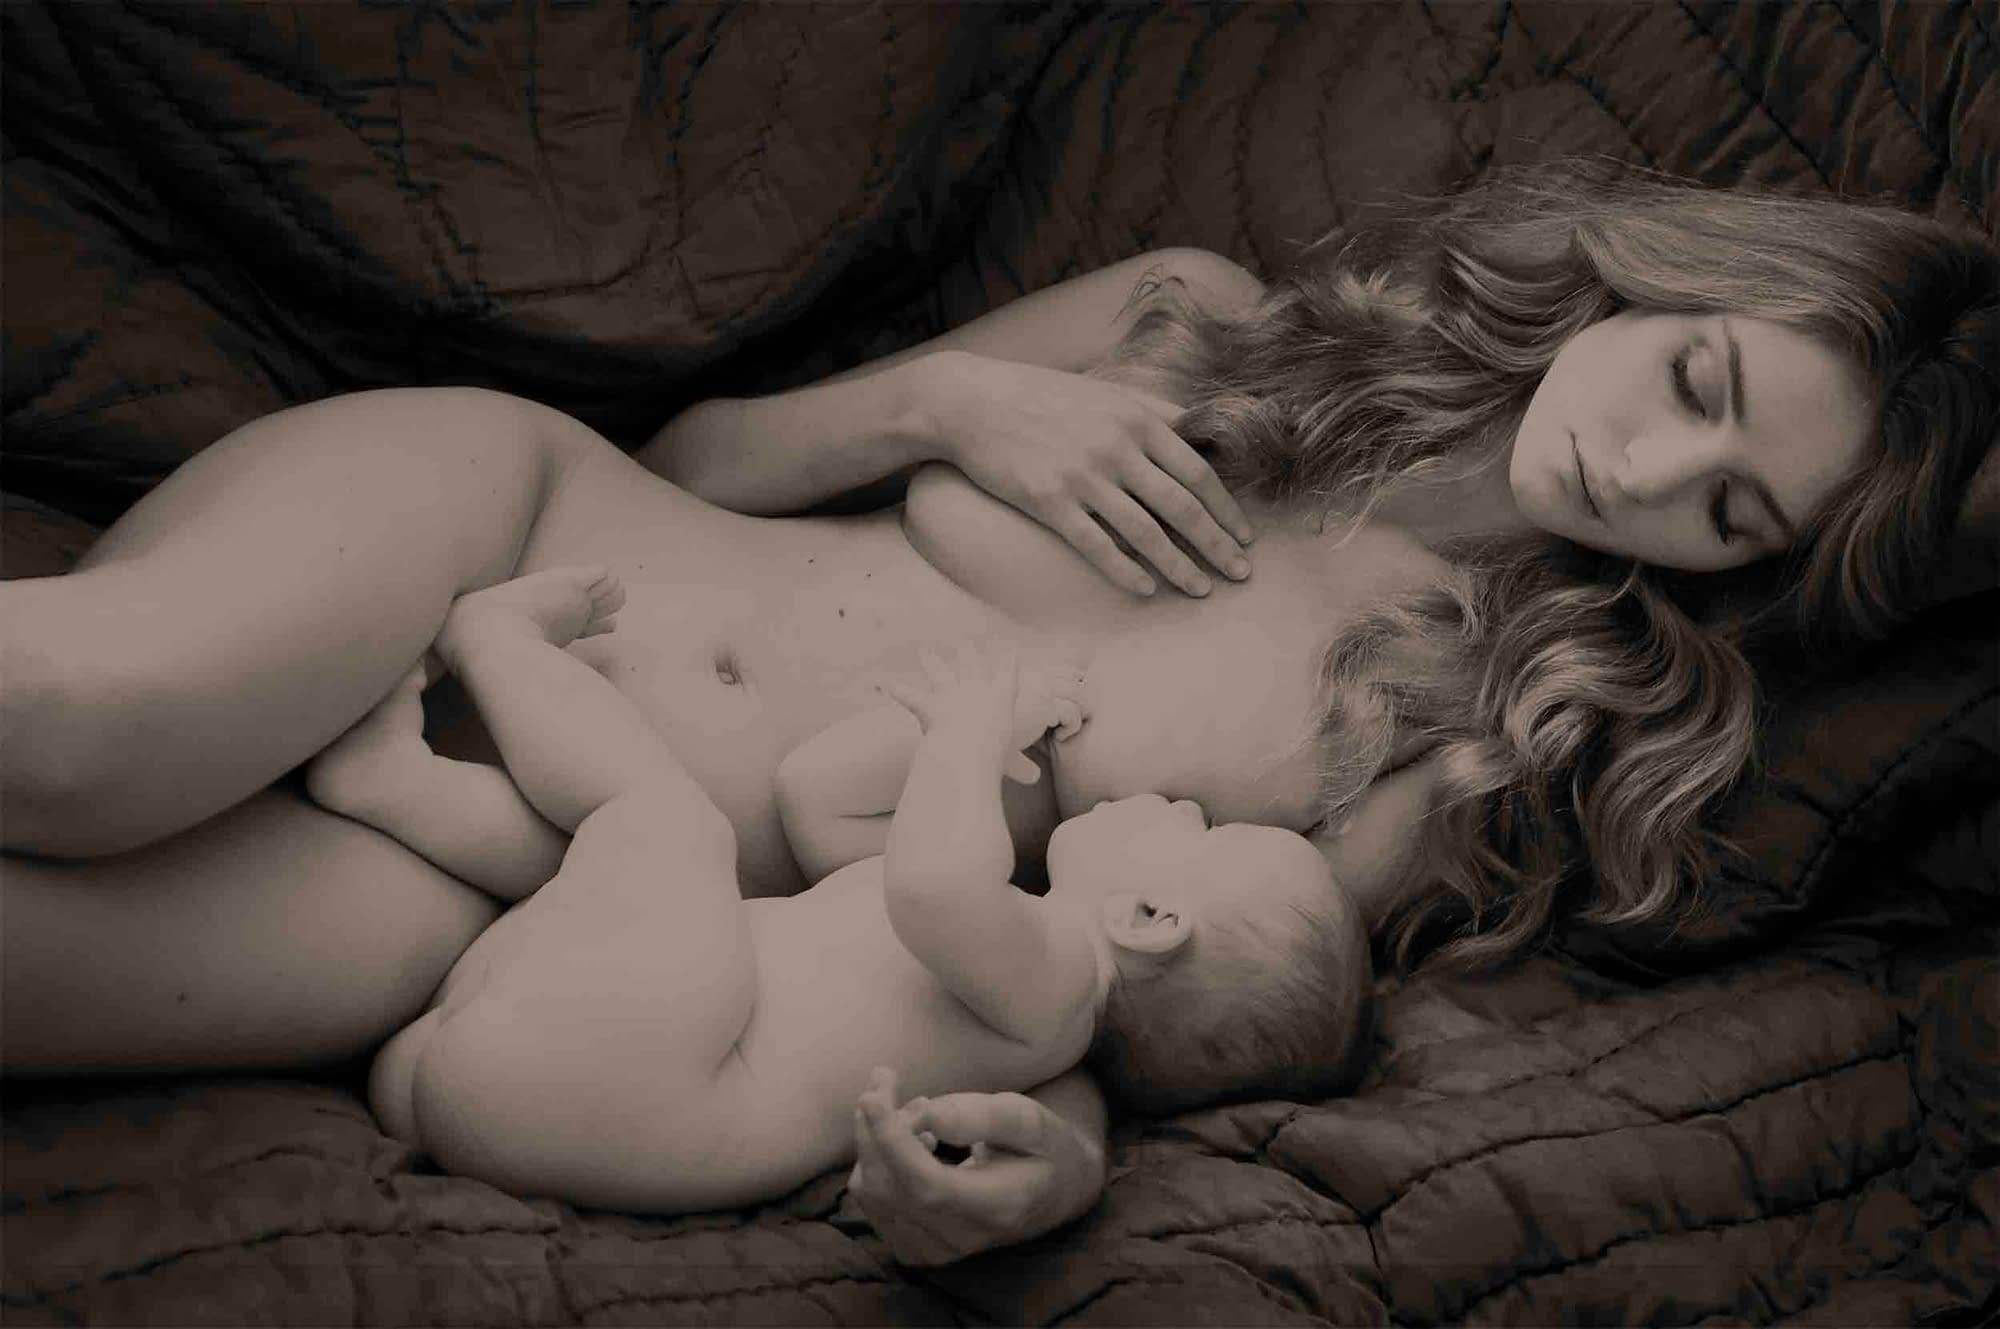 Mother and baby fine artistic nude soul portrait photographer